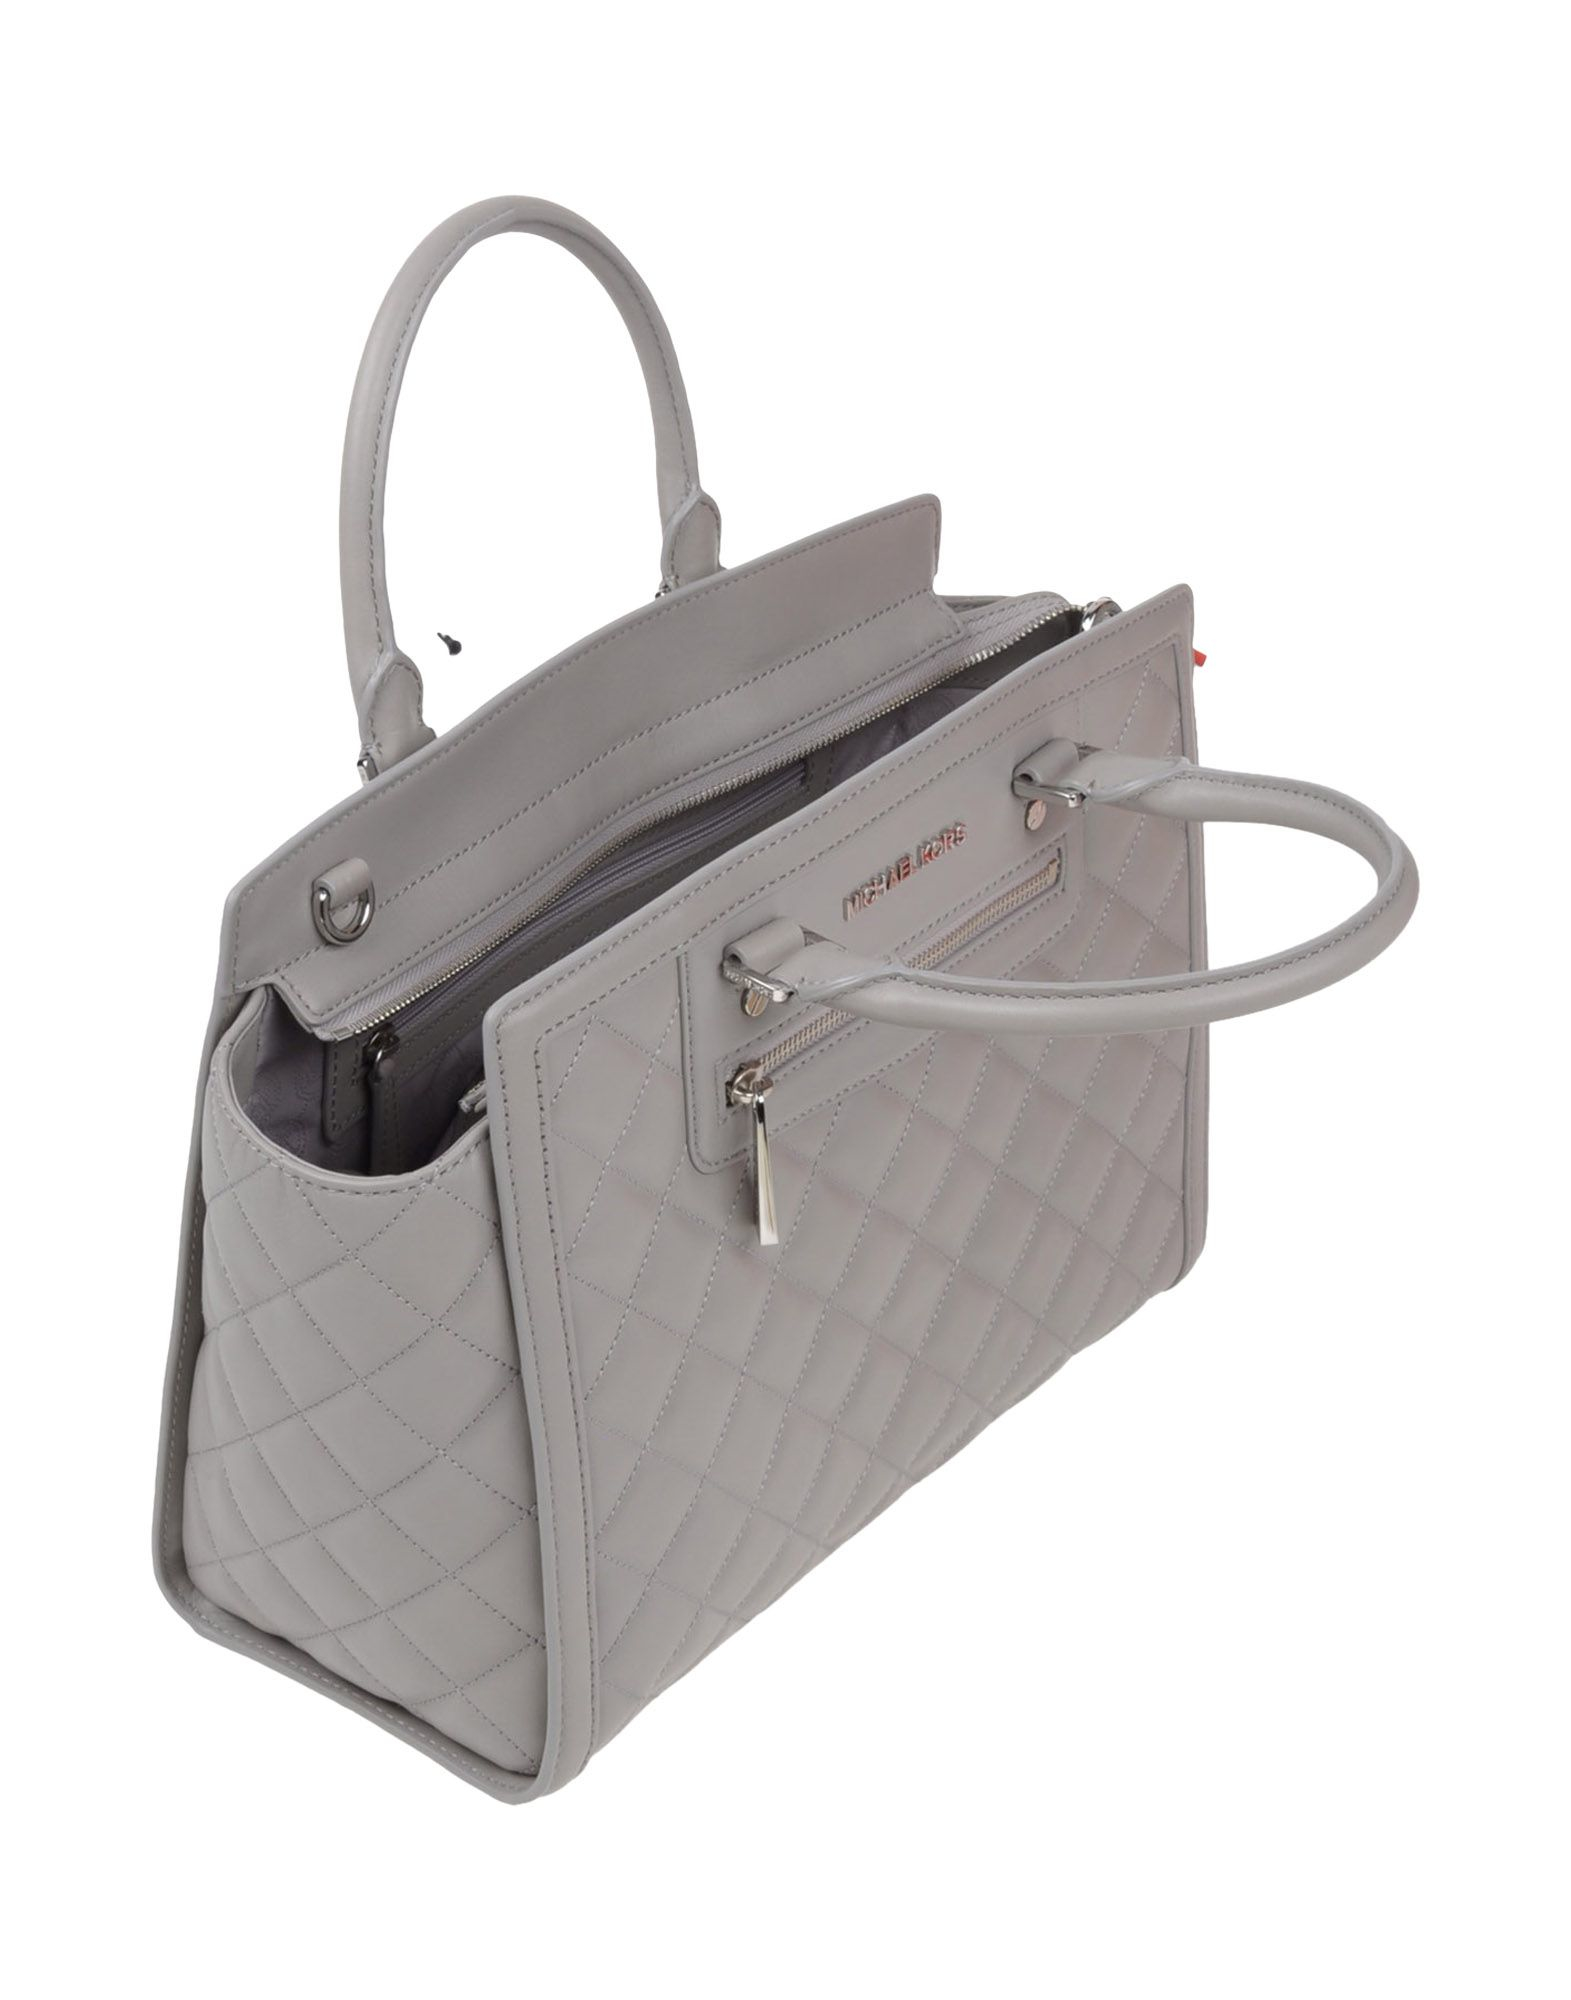 6ba7891ae9d4 ... purchase lyst michael michael kors handbag in gray 81b3b b417b